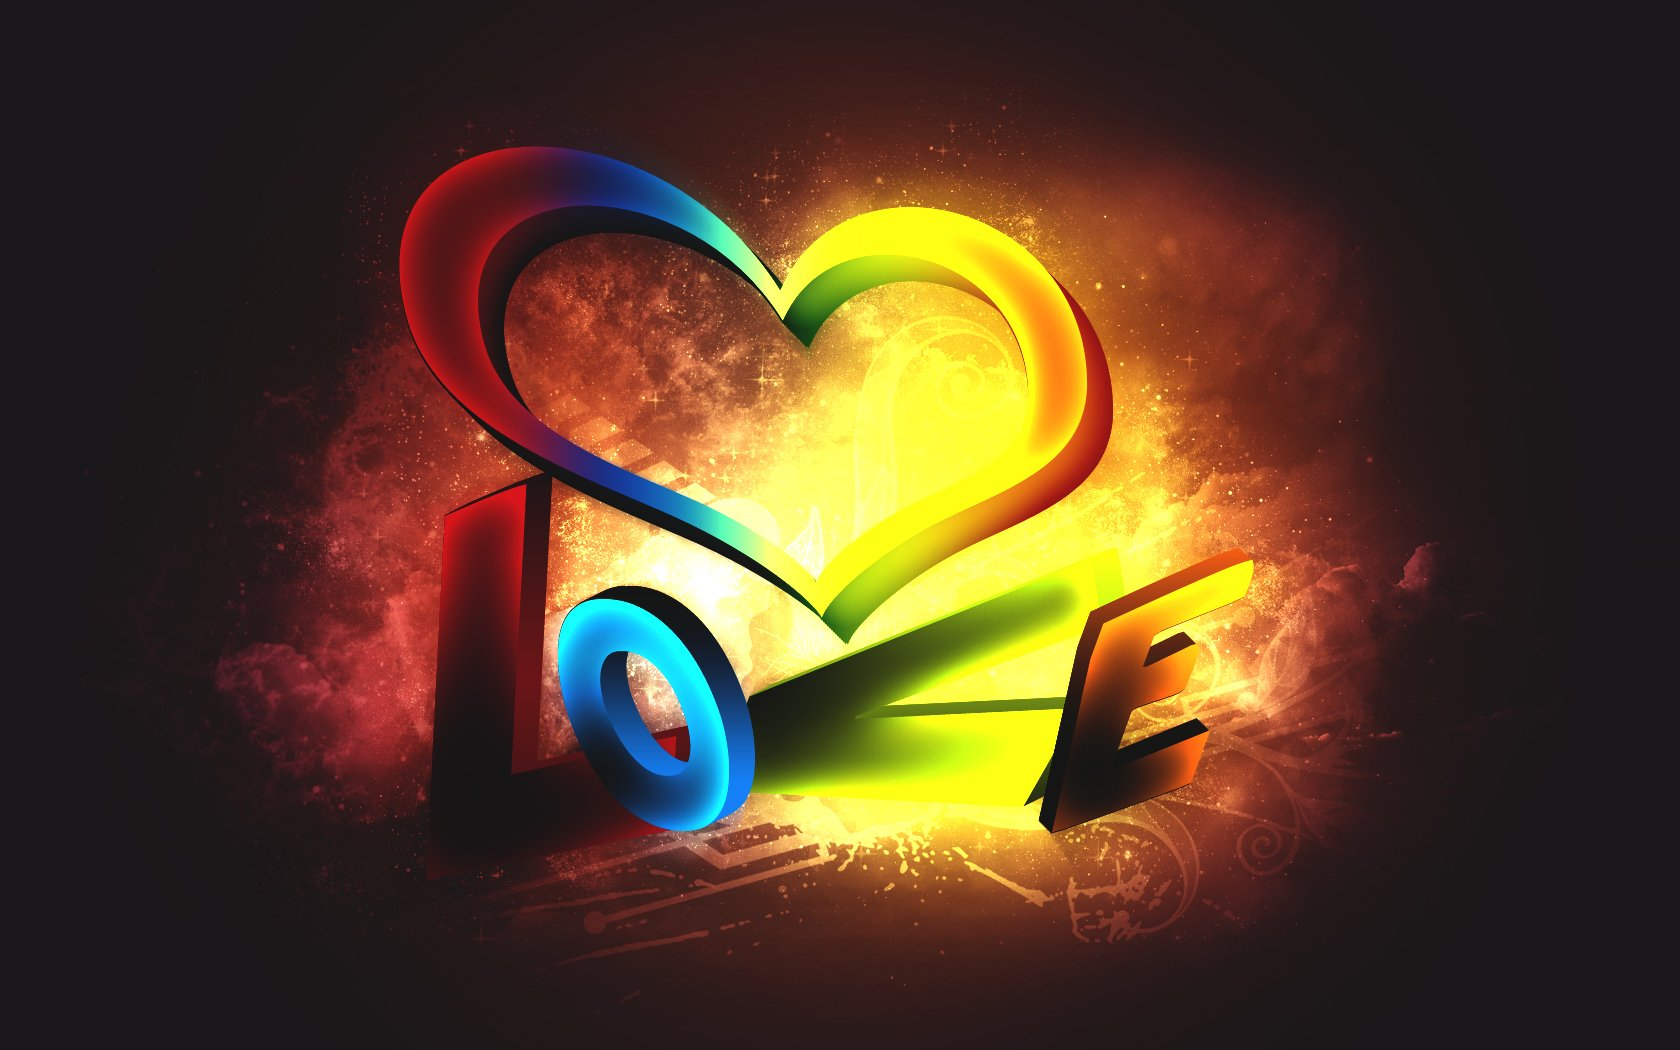 3d love for android wallpaper: desktop hd wallpaper - download free